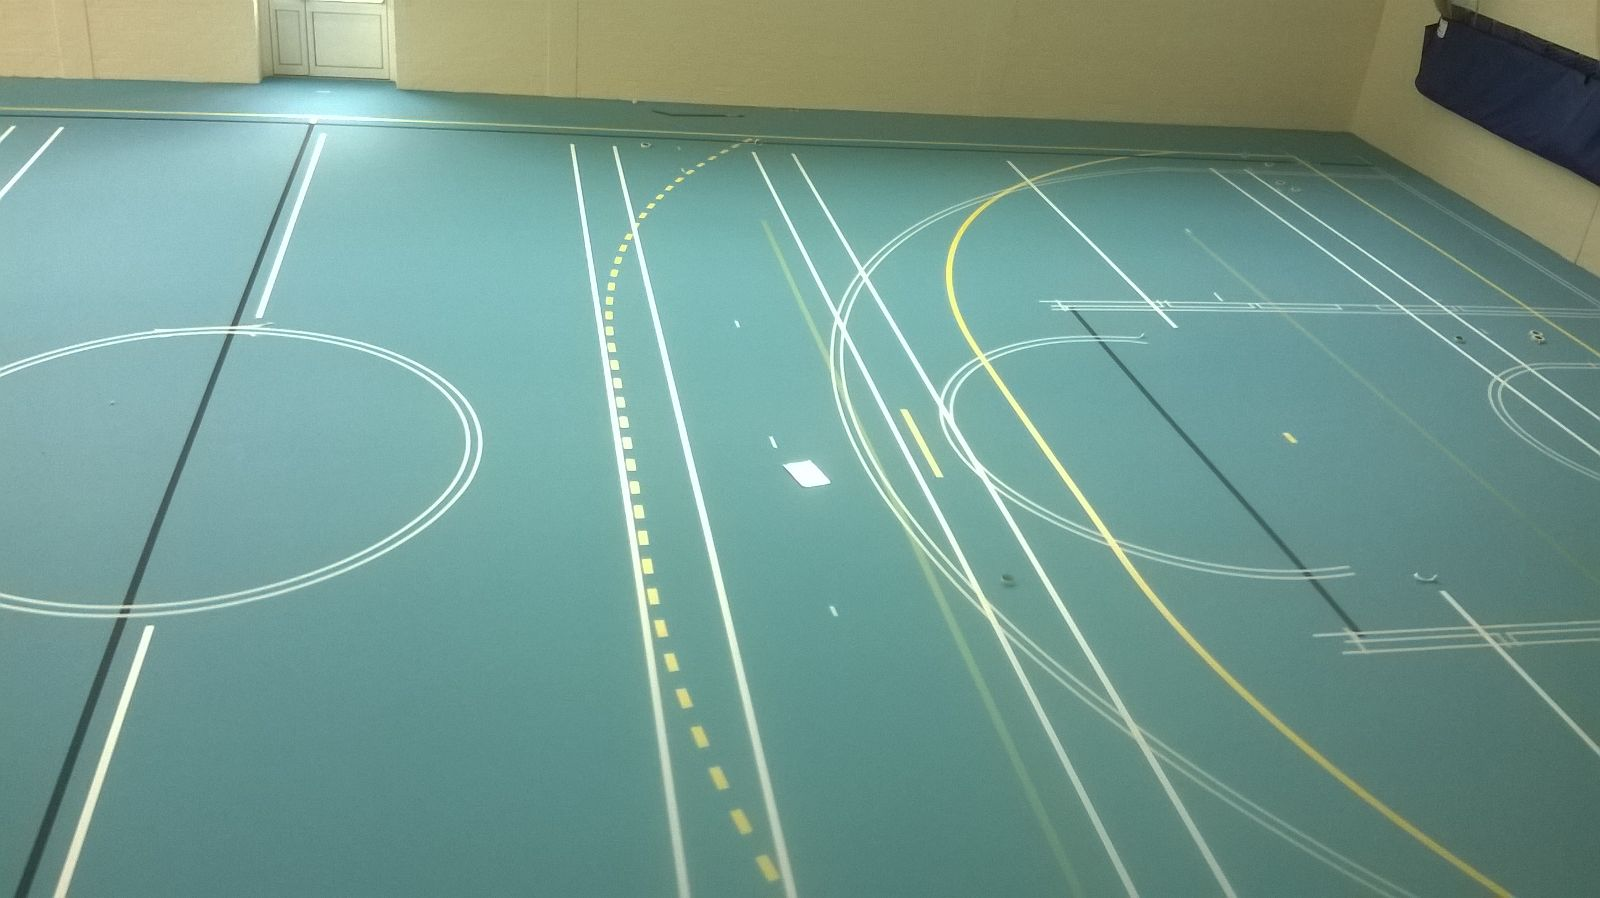 Installation of Pulastic Sports hall floor with court markings by Sports Surfaces UK